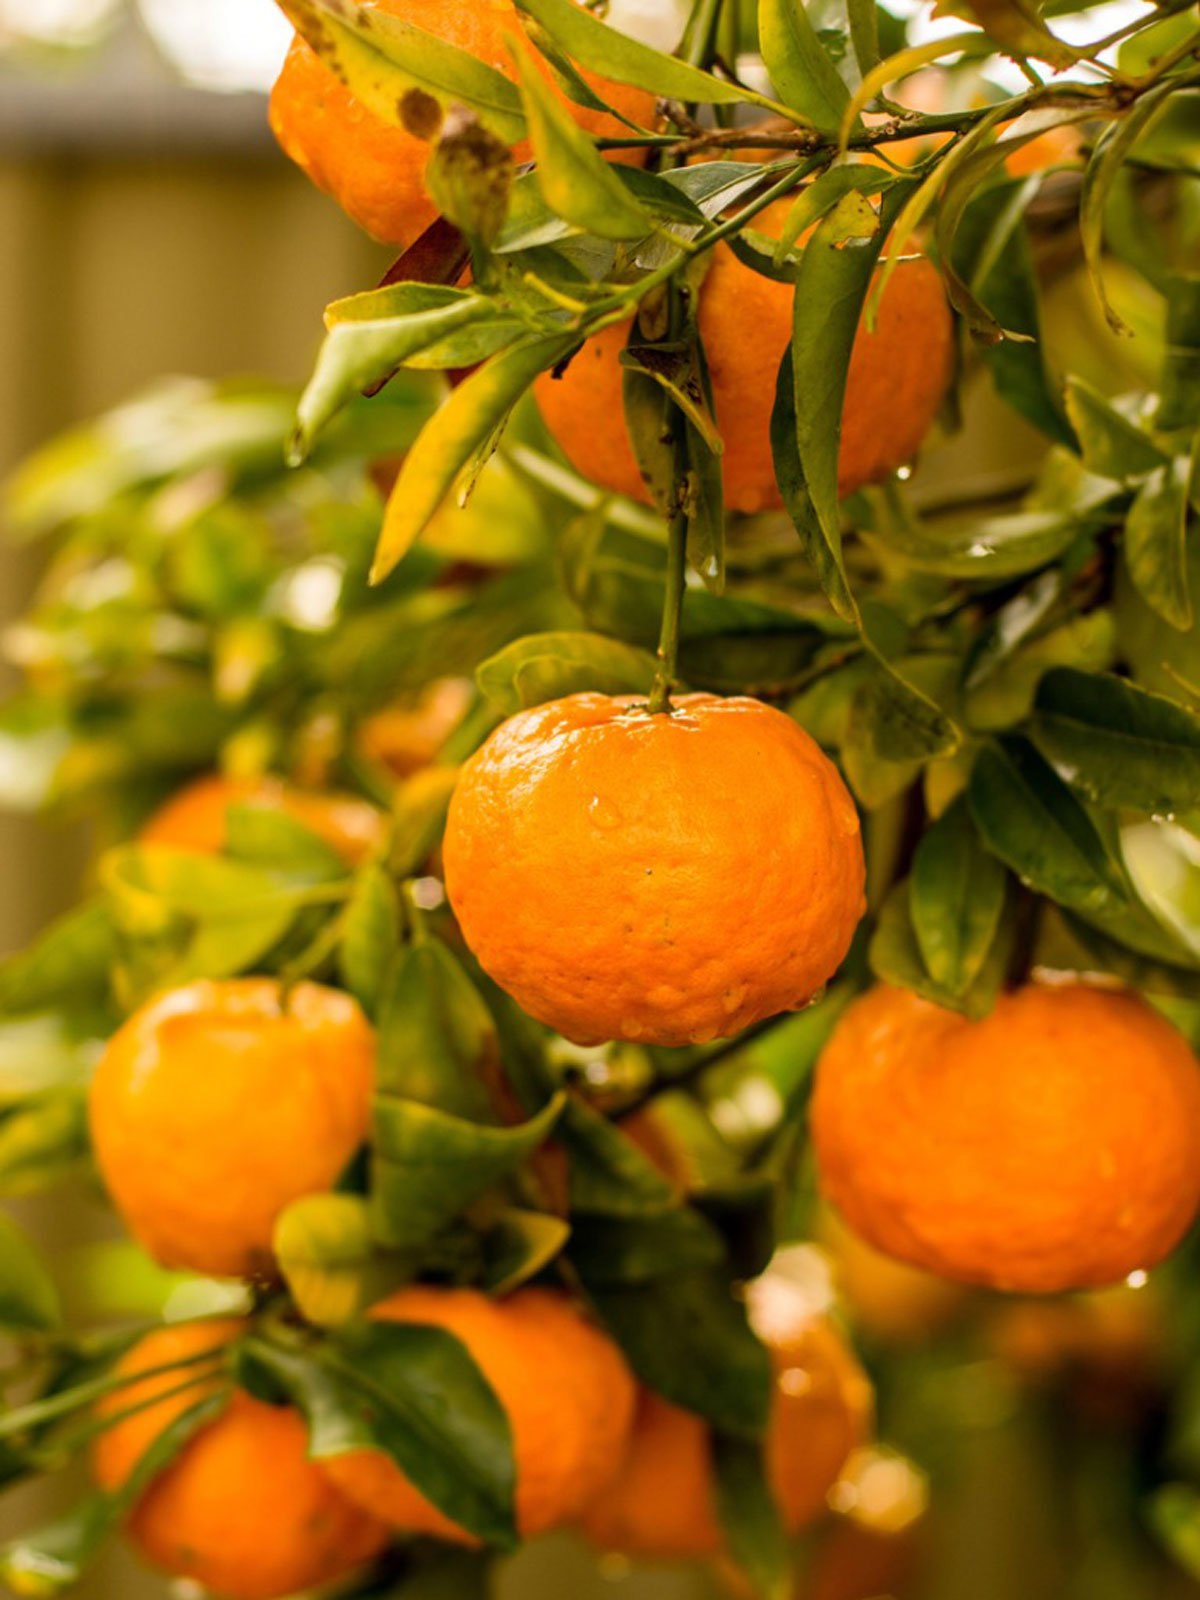 Mandarin Orange Info - Tips For Growing Mandarin Oranges